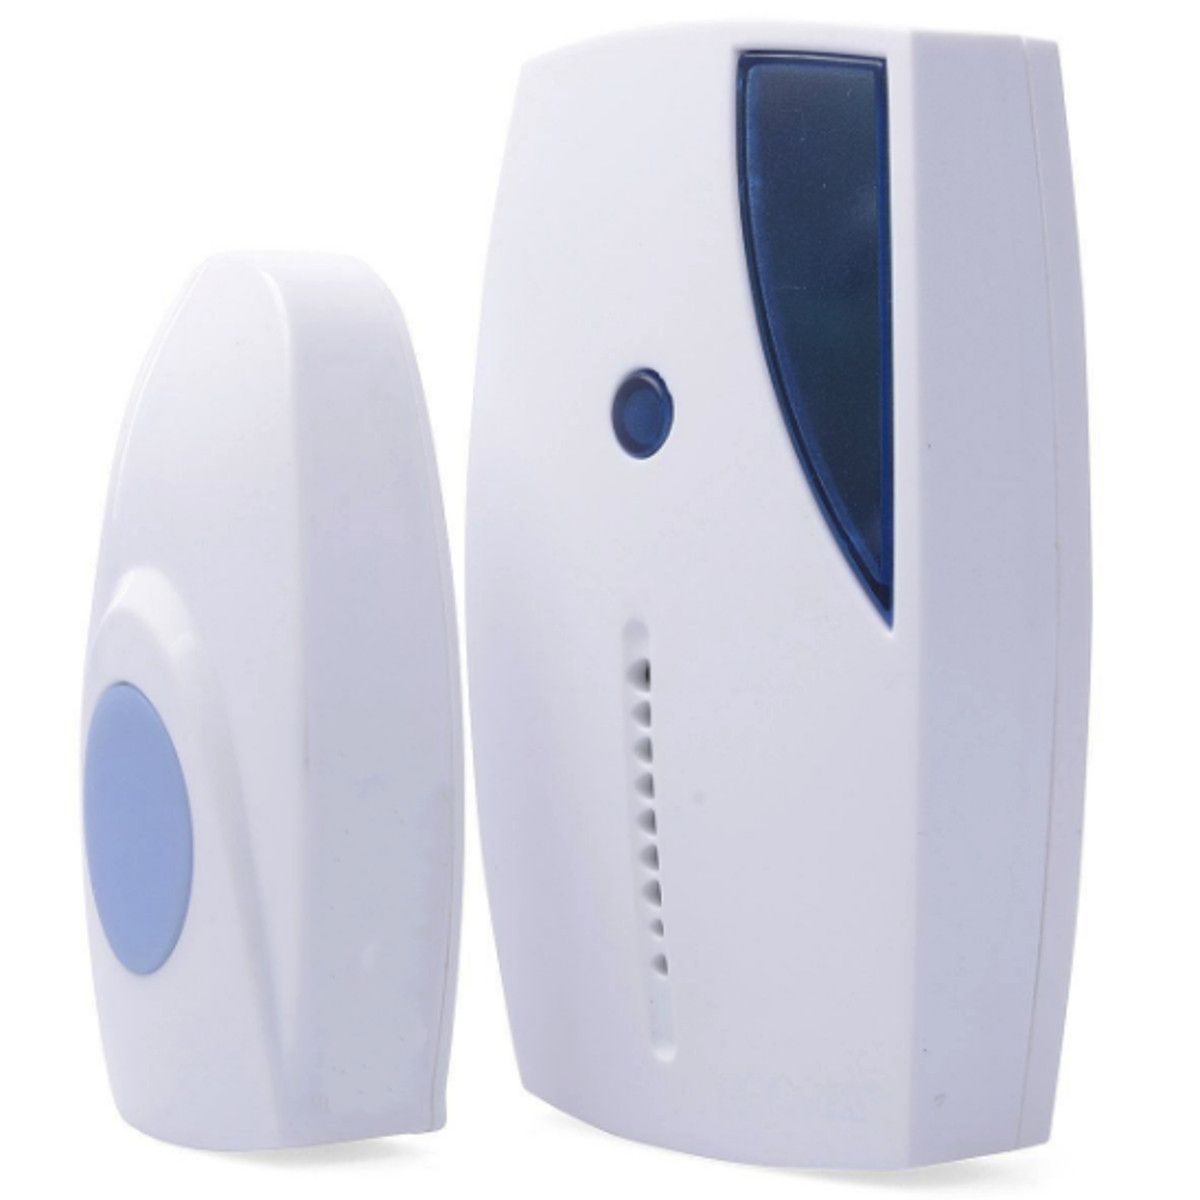 NEW 36 Tune Chimes Songs Waterproof LED Wireless Doorbell Remote Control Door Bell